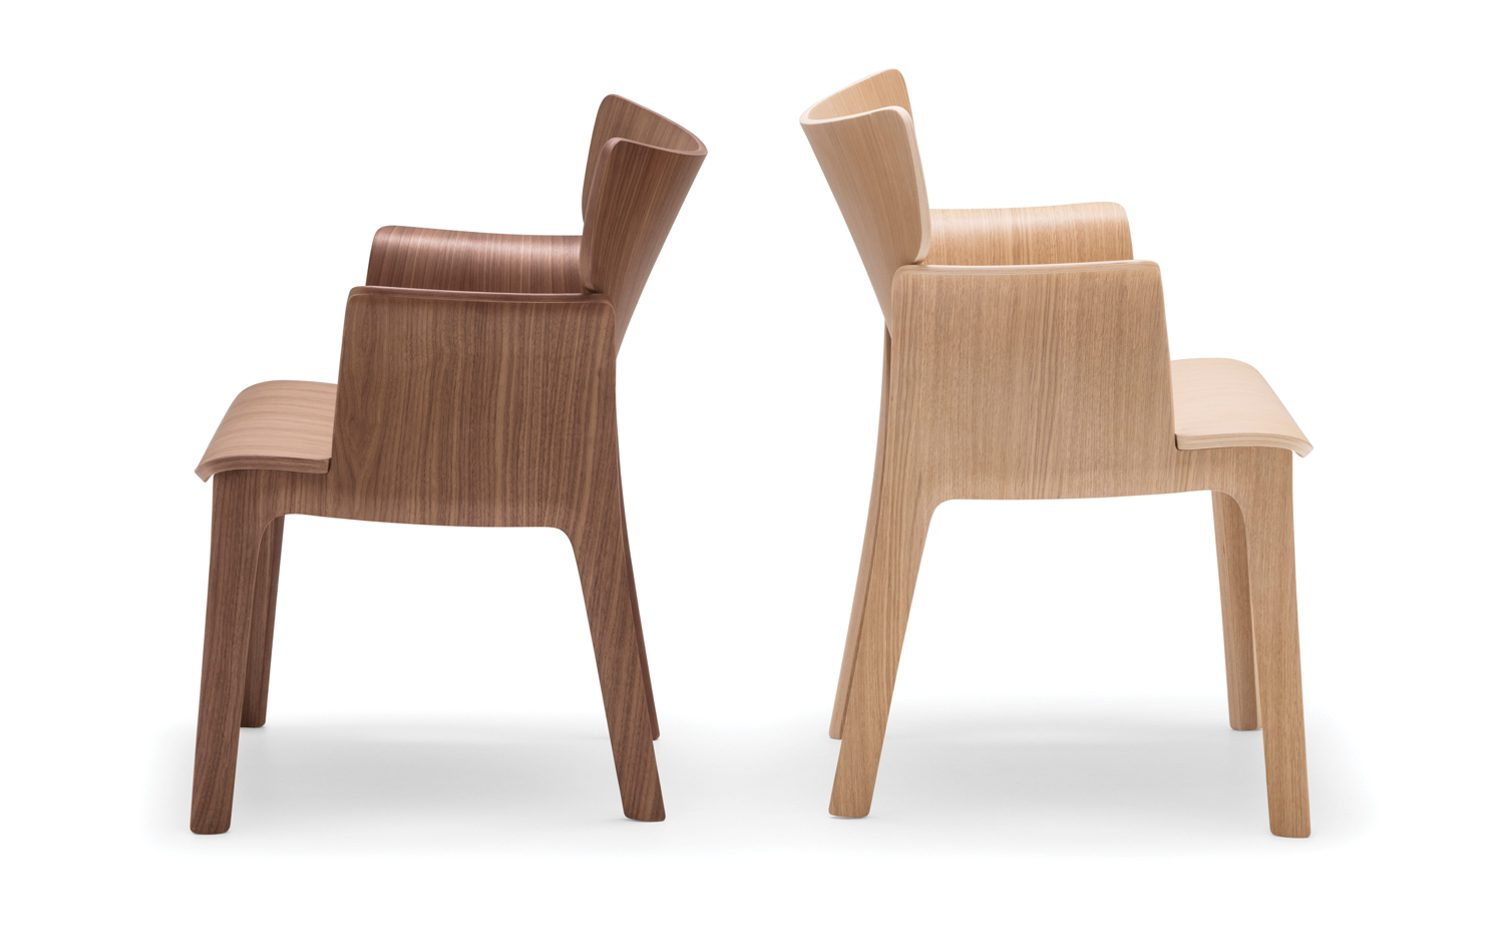 Two chairs, back to back. The one on the left is a dark brown and the other on the right is a light brown.